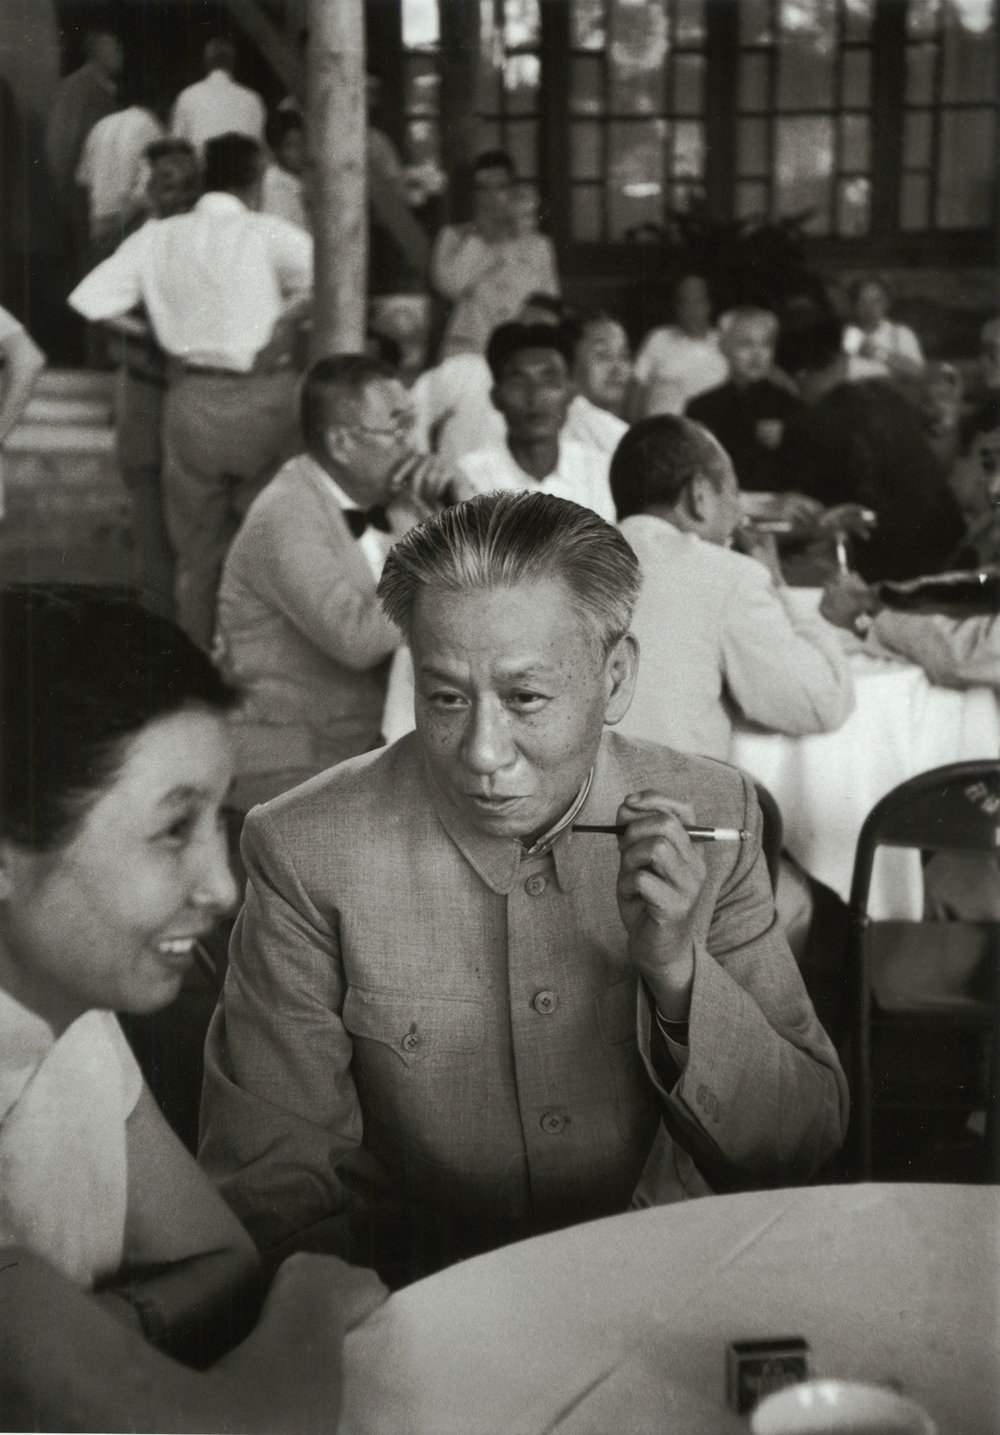 Liu Shao-chi relaxes during 8th National People's Congress break, Peking, China, September 1956. (RDH C047-34)